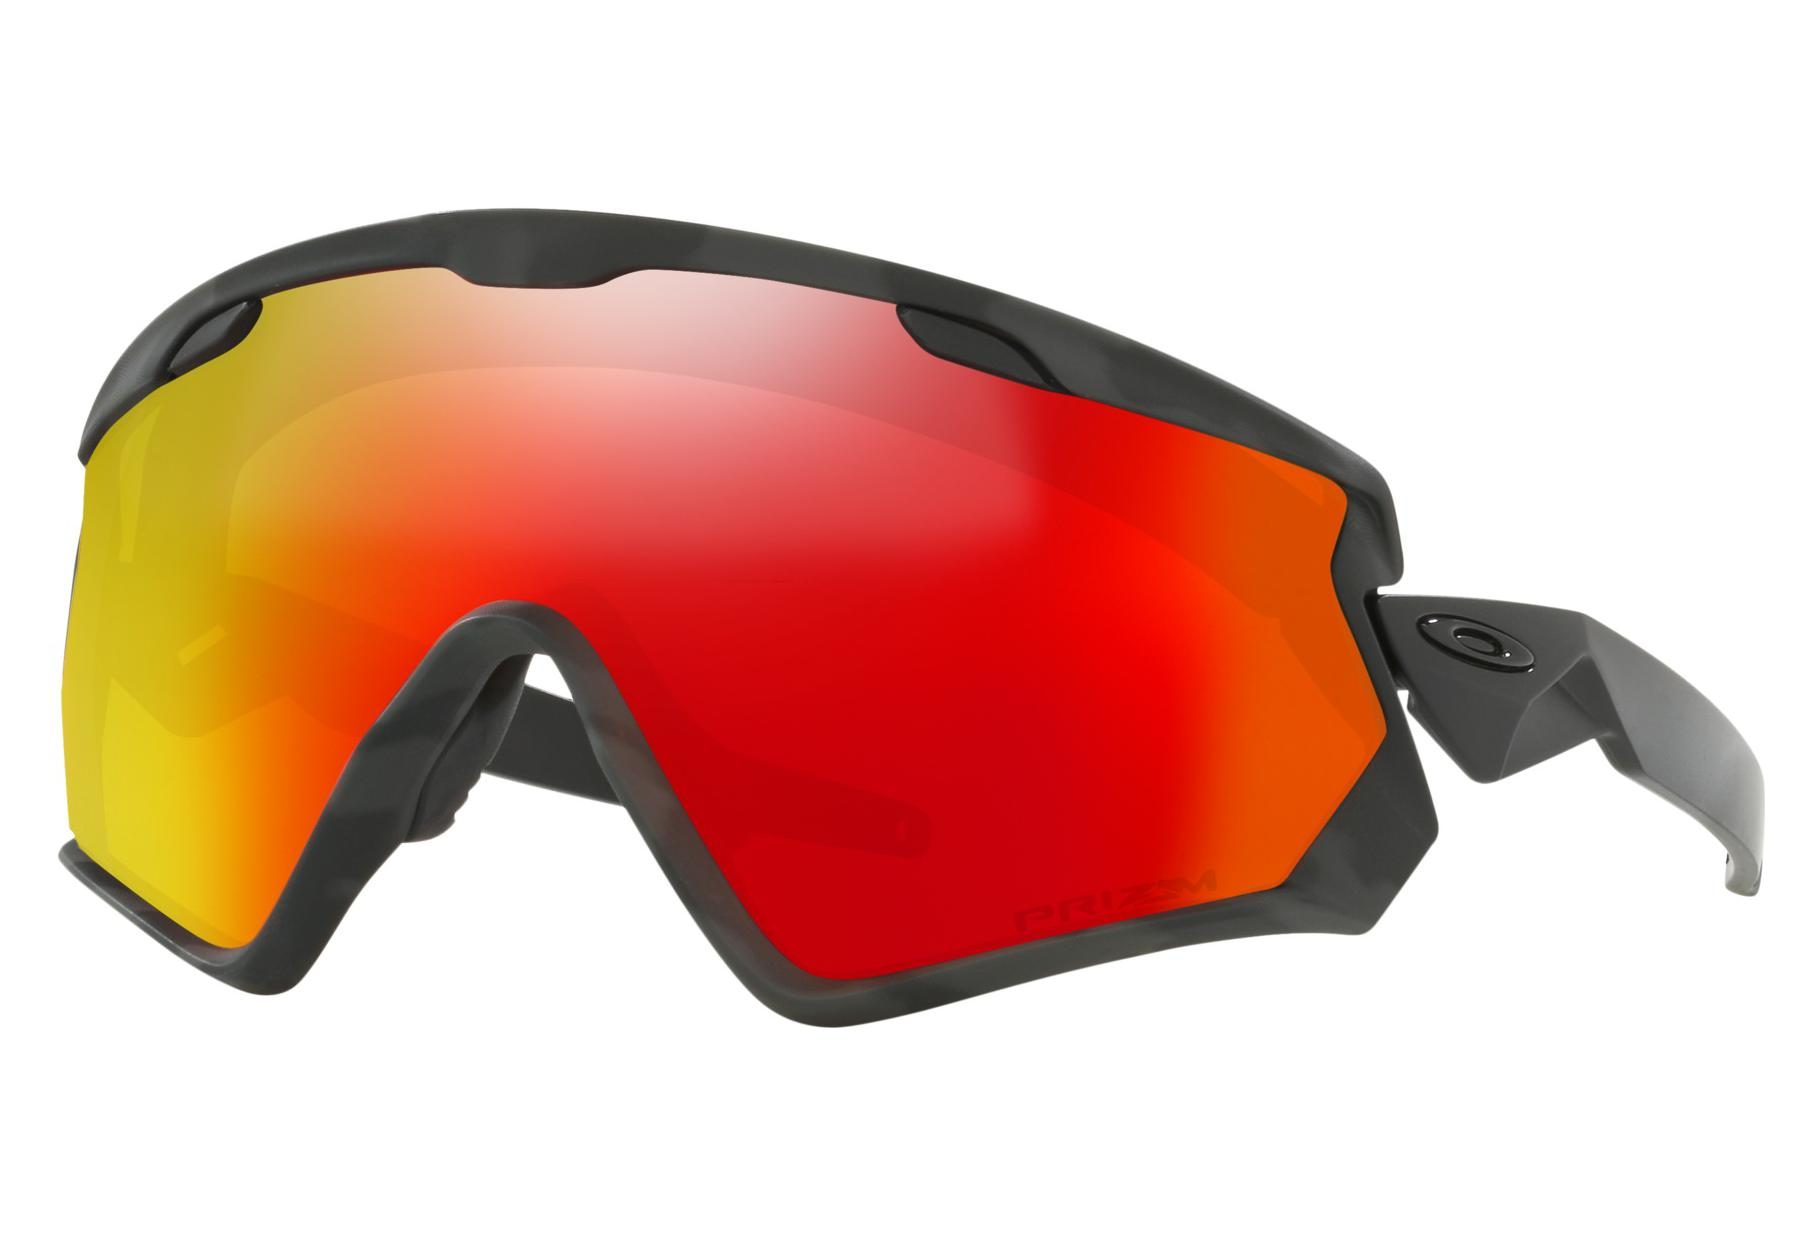 Paire de Lunettes Oakley Wind Jacket 2.0 Night Camo Prizm Snow Torch  Iridium Ref OO7072- d52468d45da1